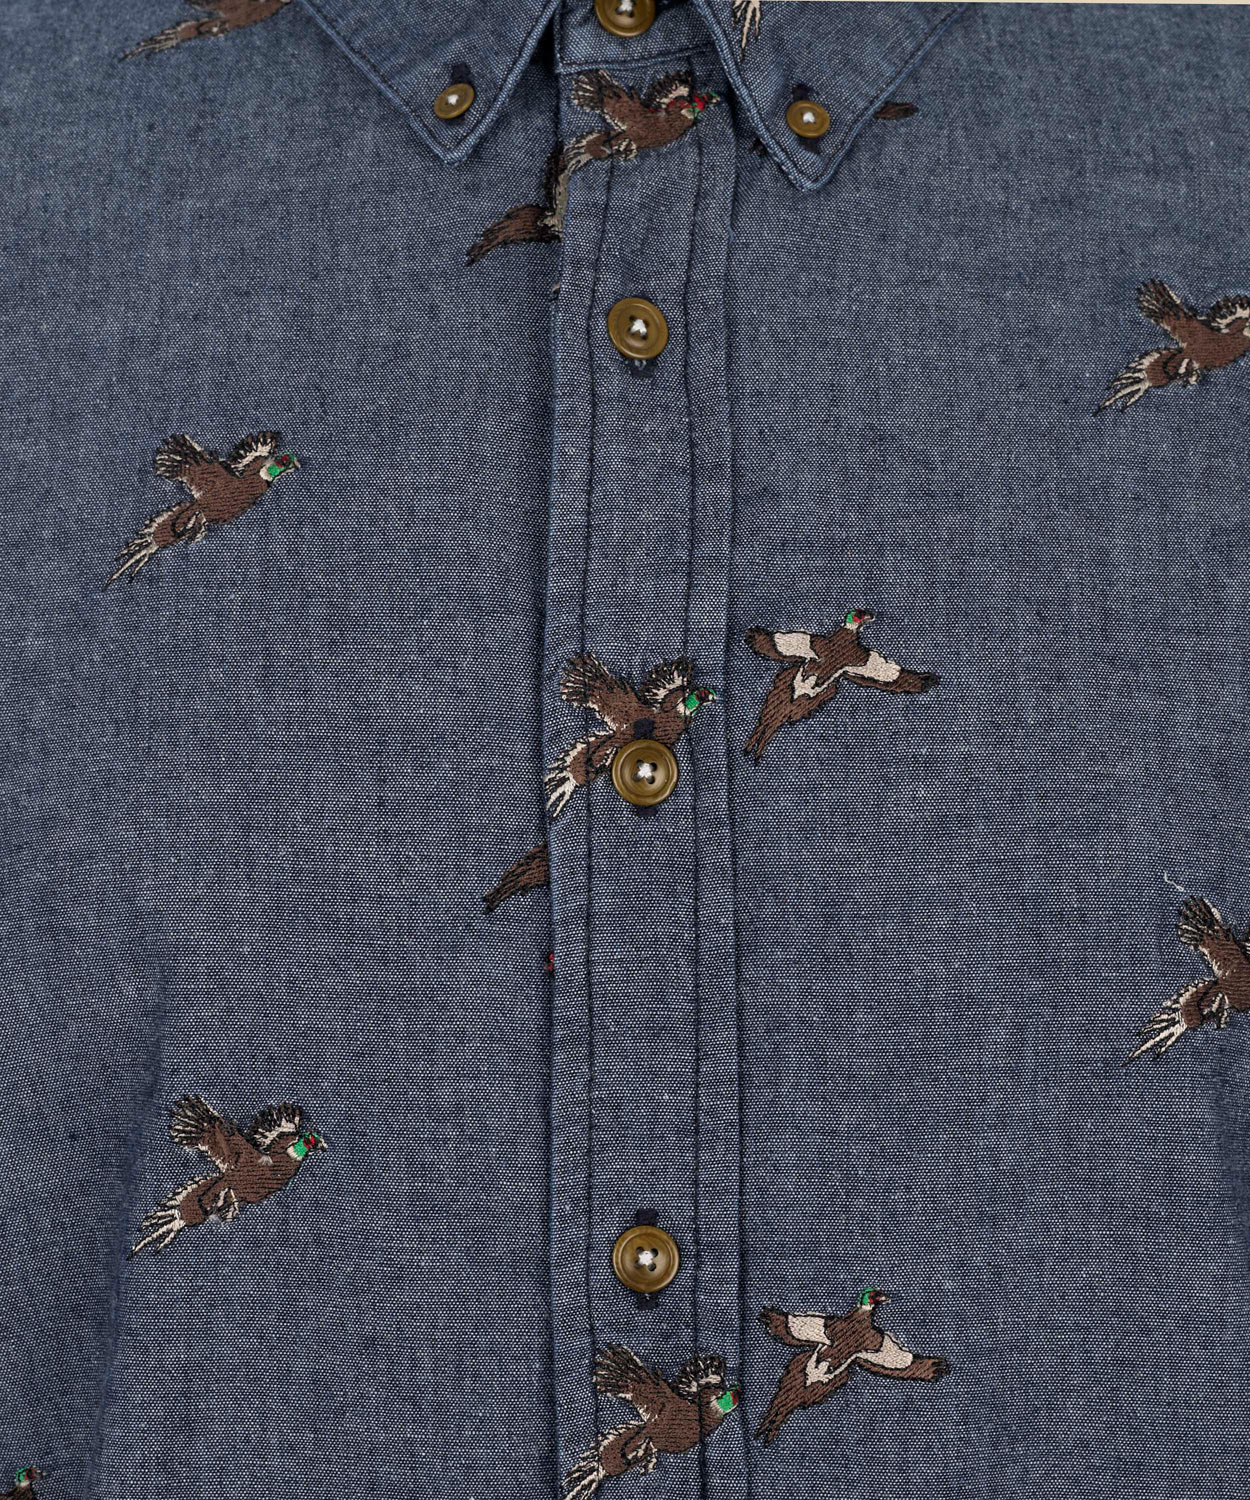 cdd9ea6d3d6 Barbour Indigo Denim Pheasant Print Shirt in Blue for Men - Lyst